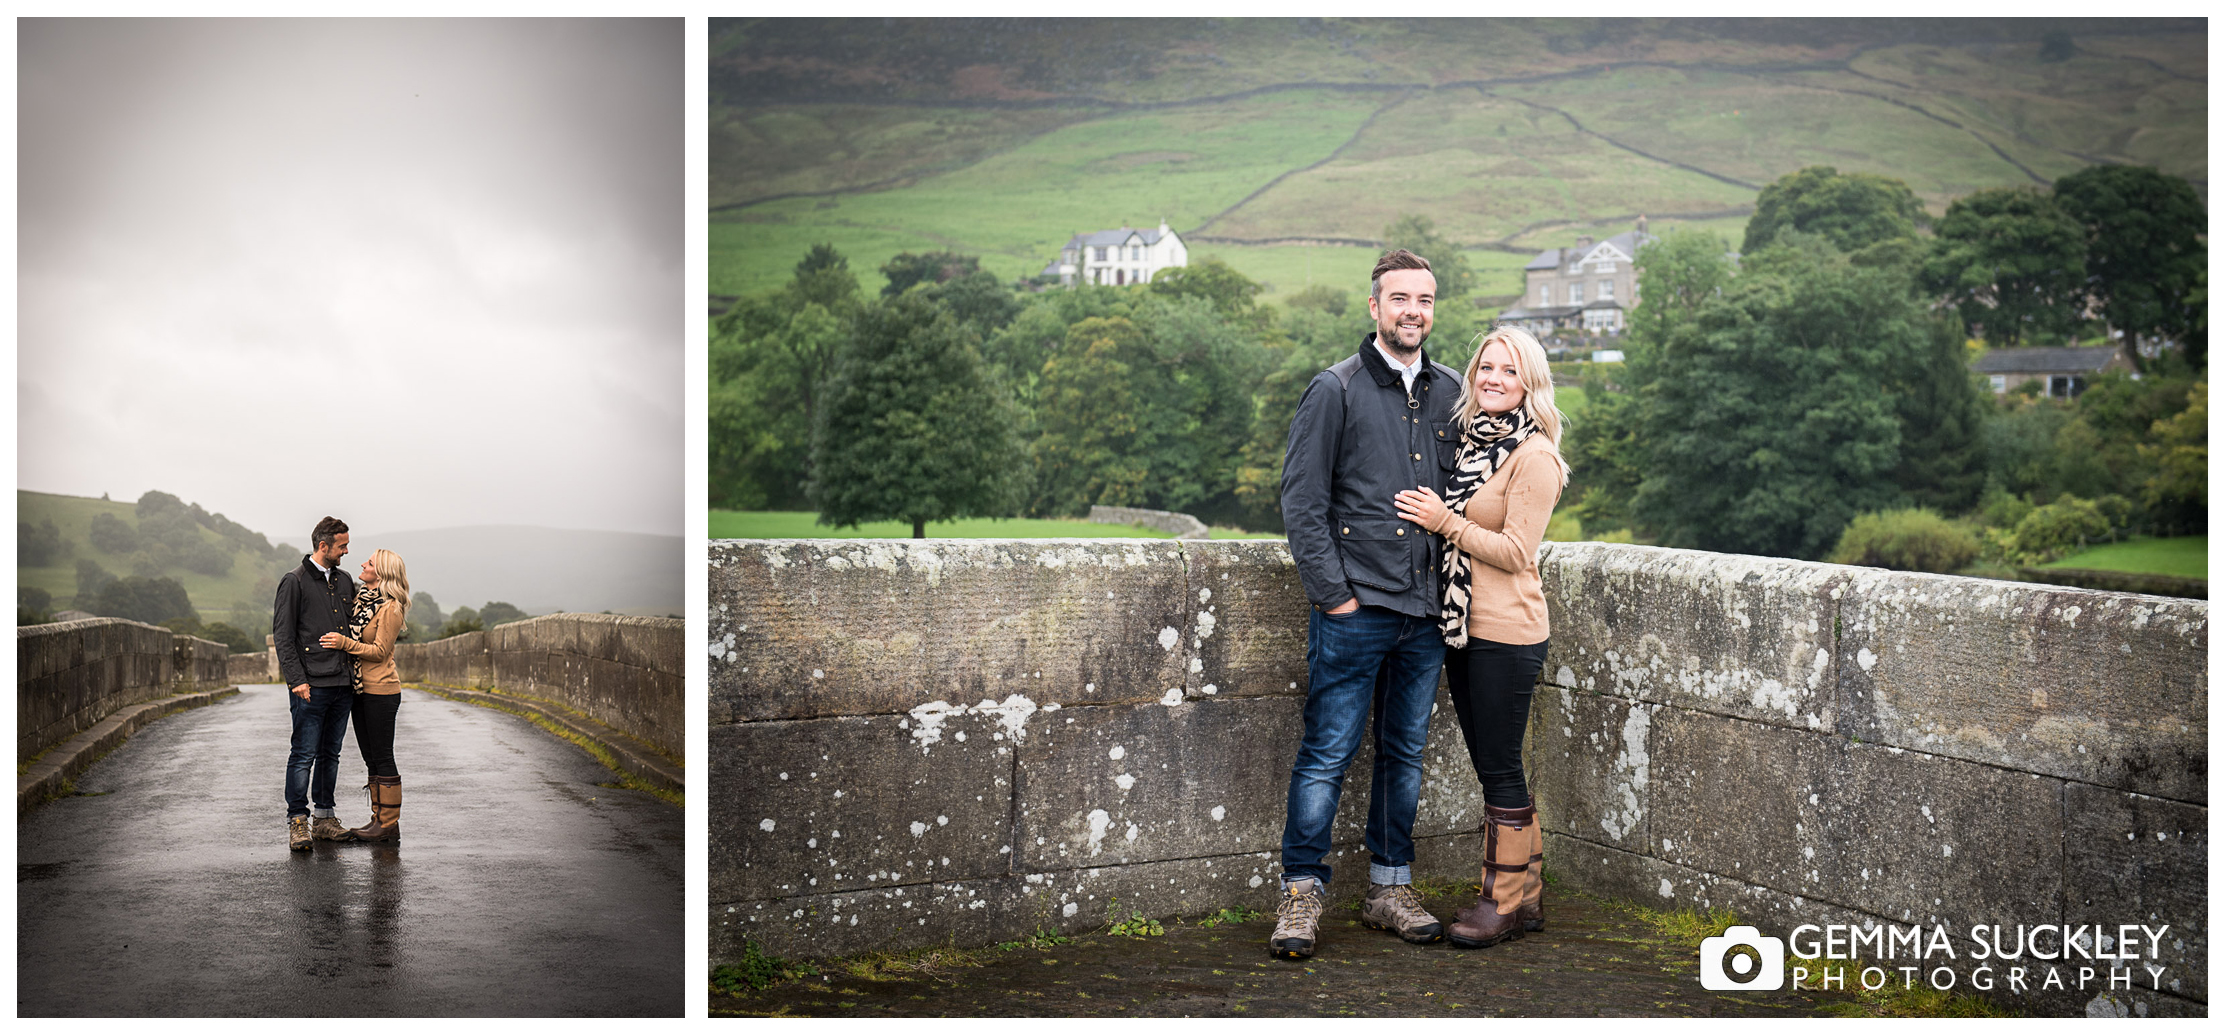 A couple on the bridge at Burnsall, North Yorkshire